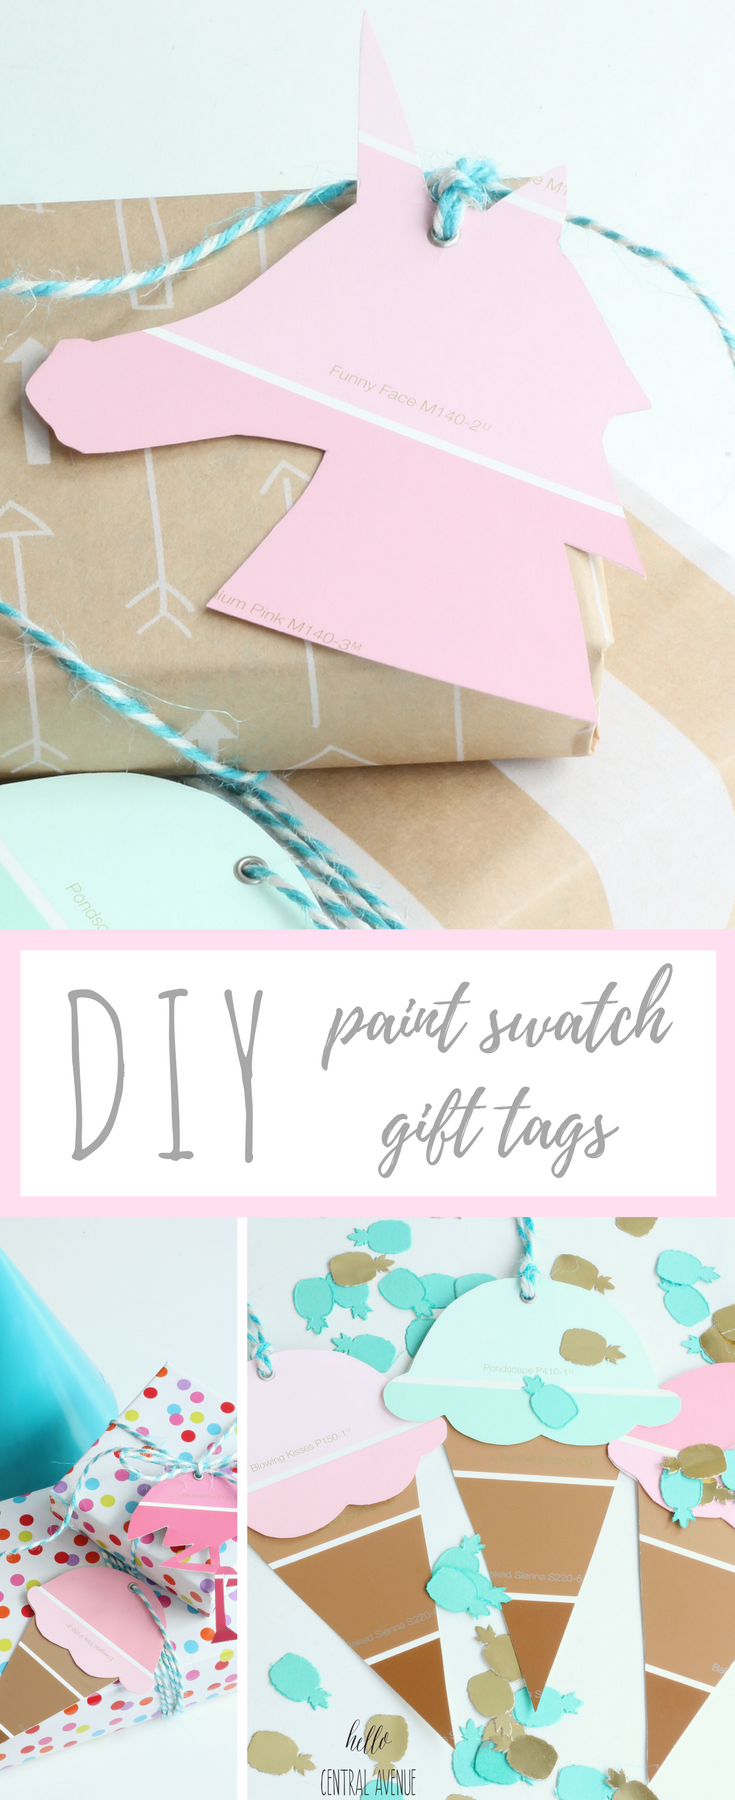 Use paint swatches to create cute and colorful gift tags for any occasion!